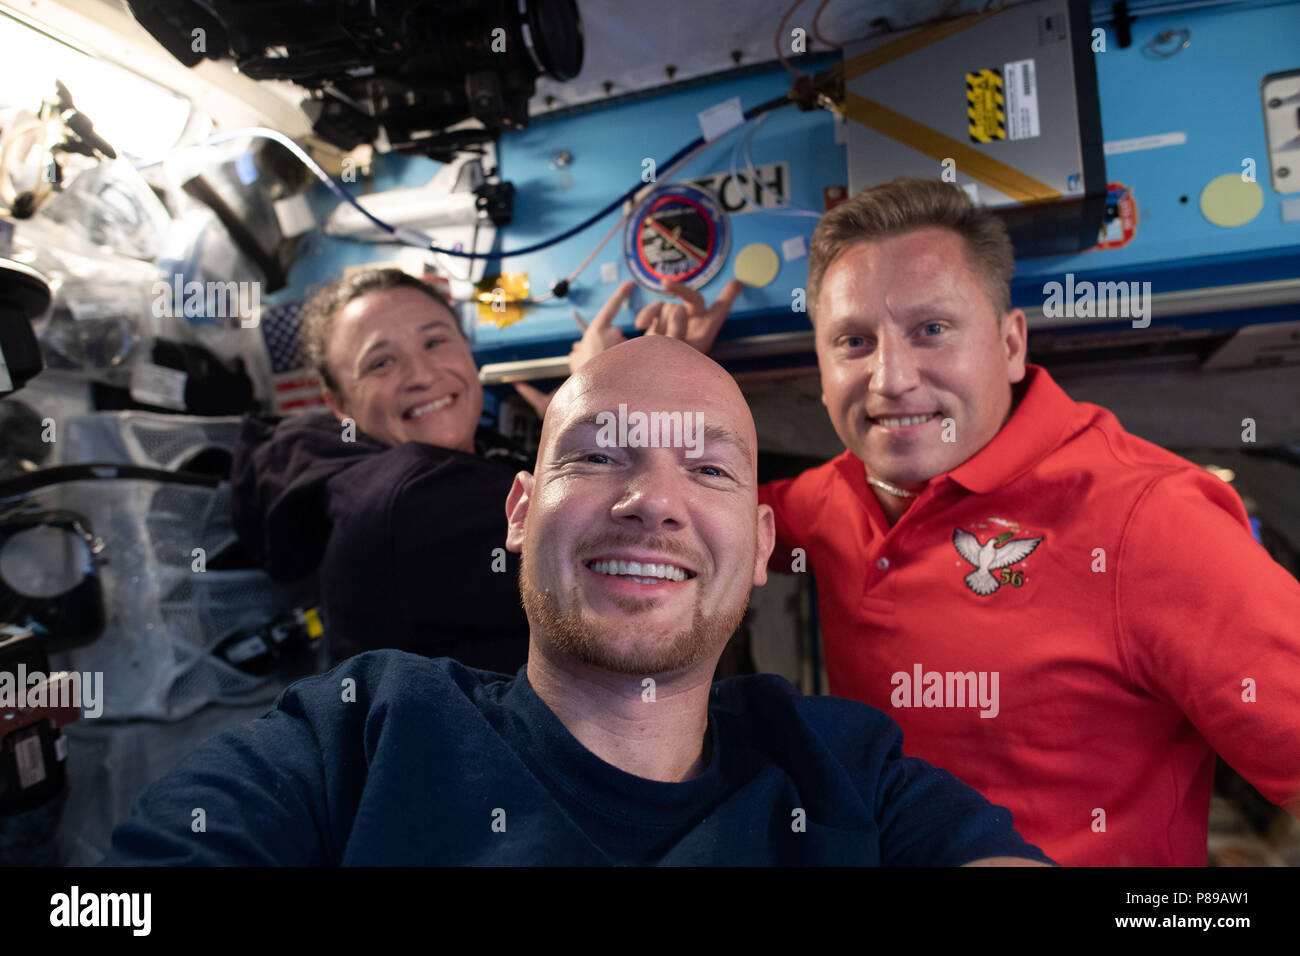 Expedition 57 crew members German astronaut Alexander Gerst of the European Space Agency, center, Serena Aunon-Chancellor of NASA, left, and Sergey Prokopyev of Roscosmos pose for a photo aboard the International Space Station June 23, 2018 in Earth Orbit. - Stock Image